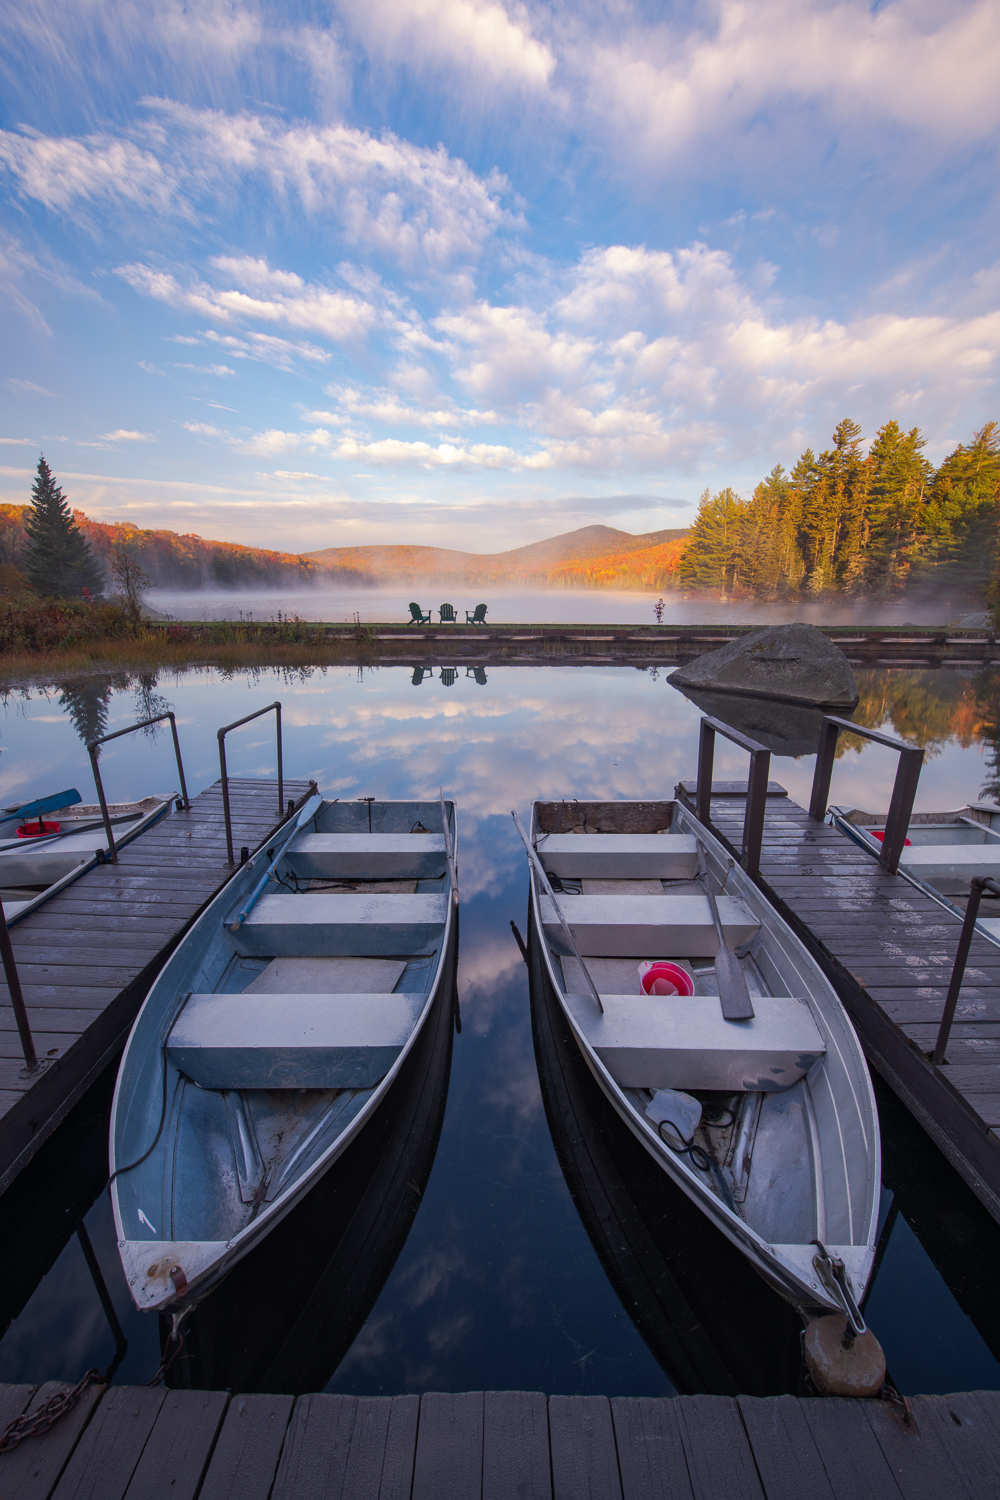 Canoes at sunrise over Noyes Pond, Groton State Forest, Vermont.